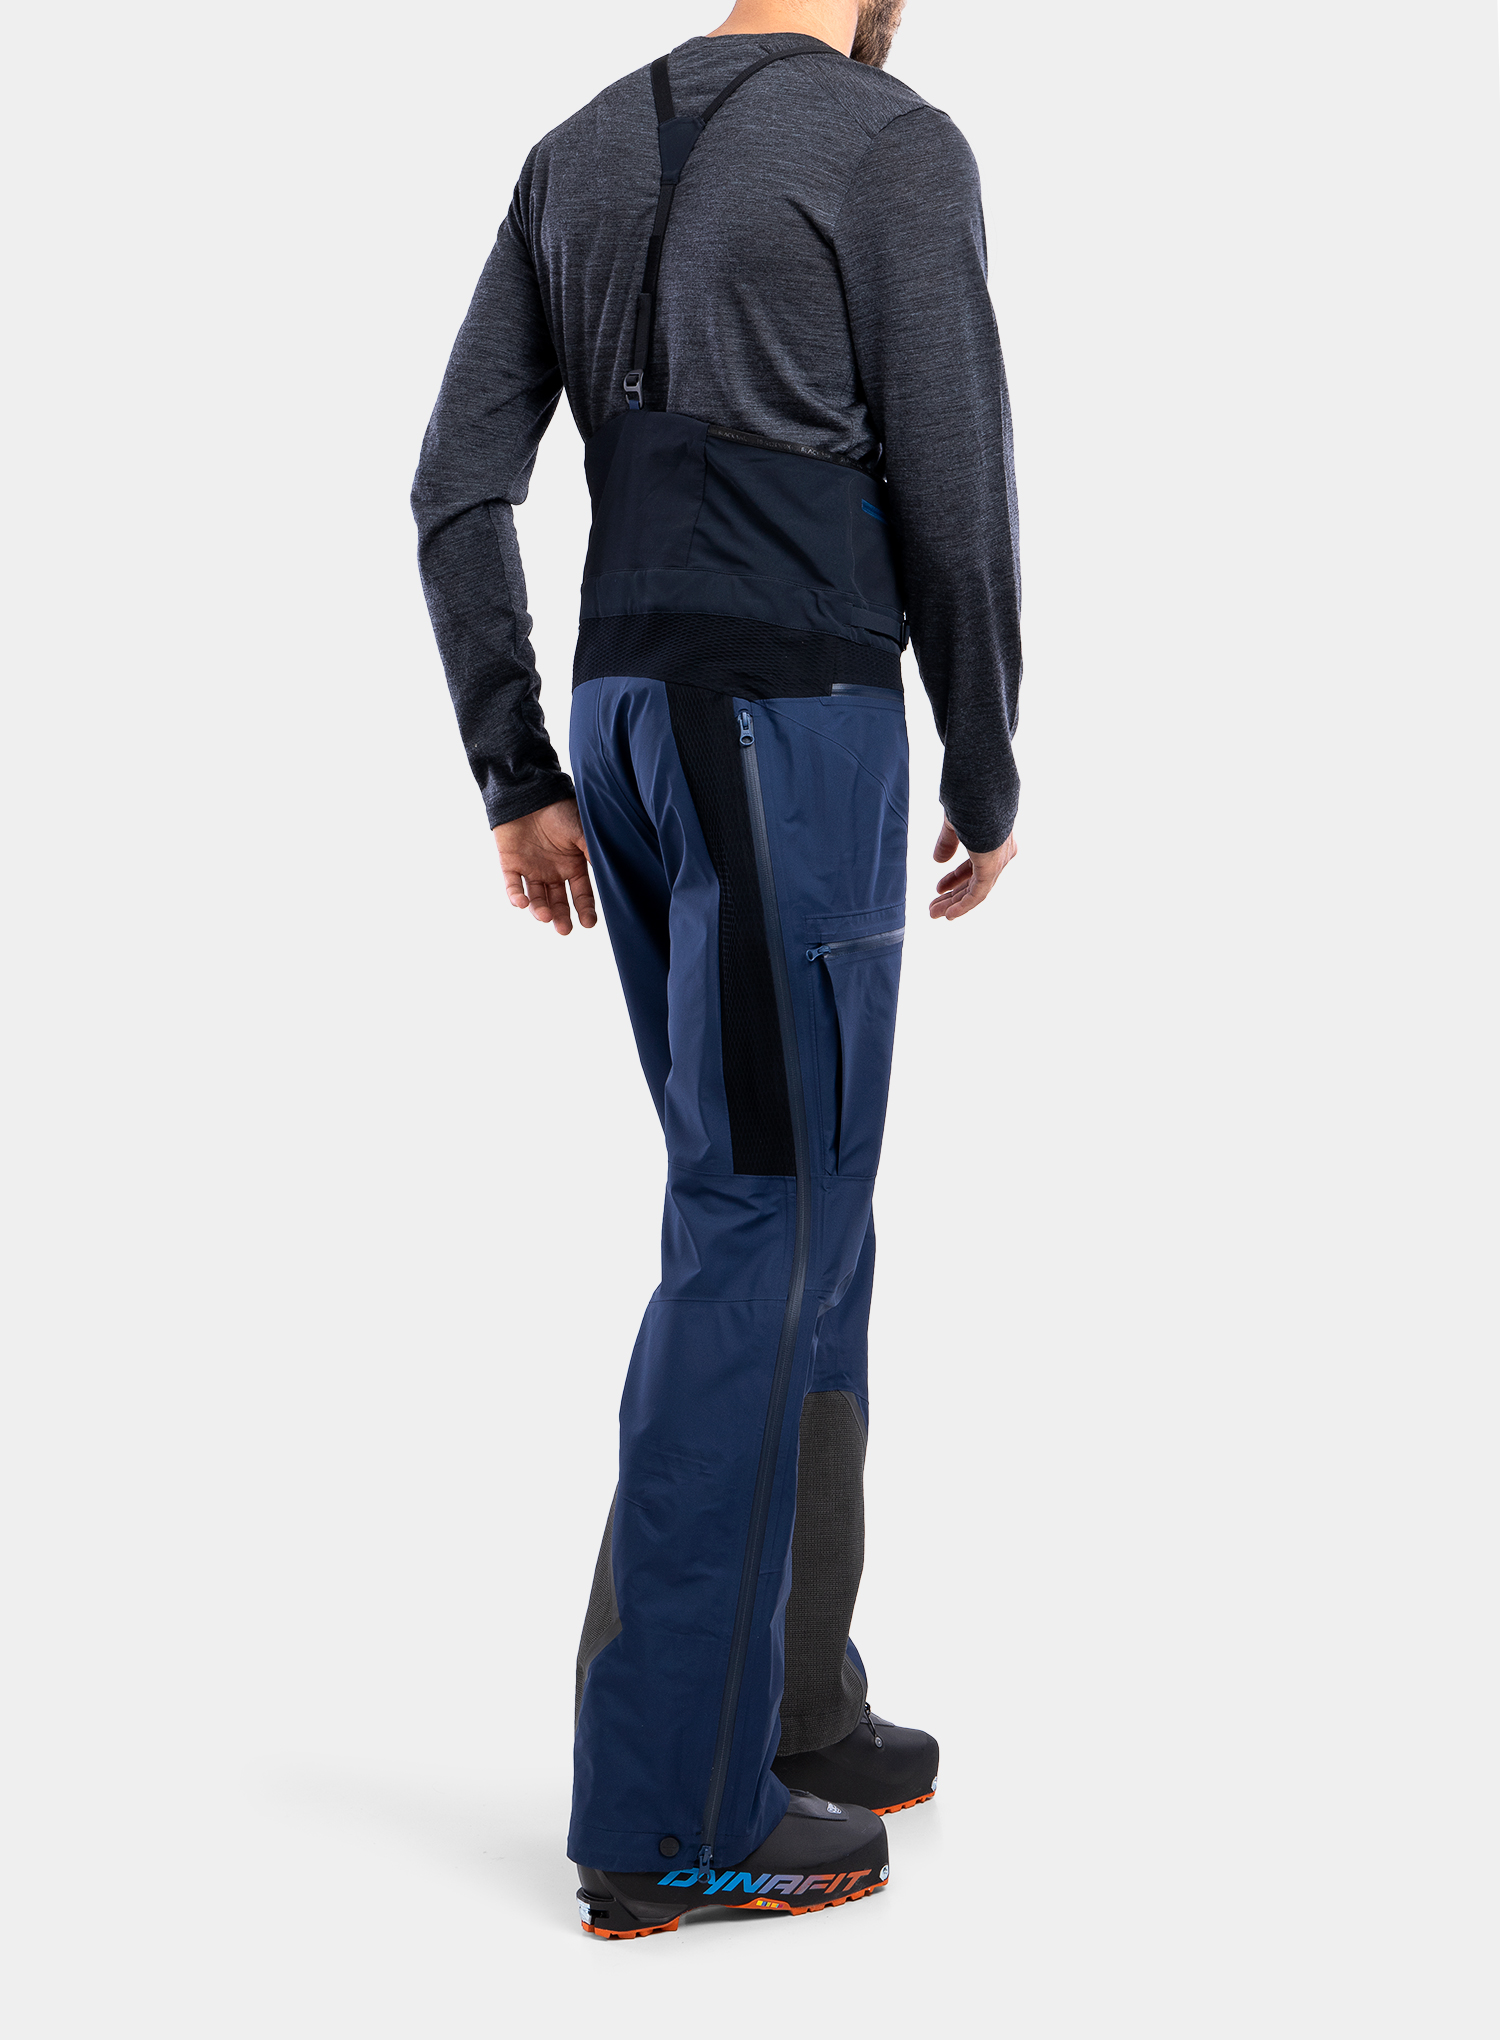 Spodnie GORE-TEX BlackYak Brangus Pants - dress blues - zdjęcie nr. 6